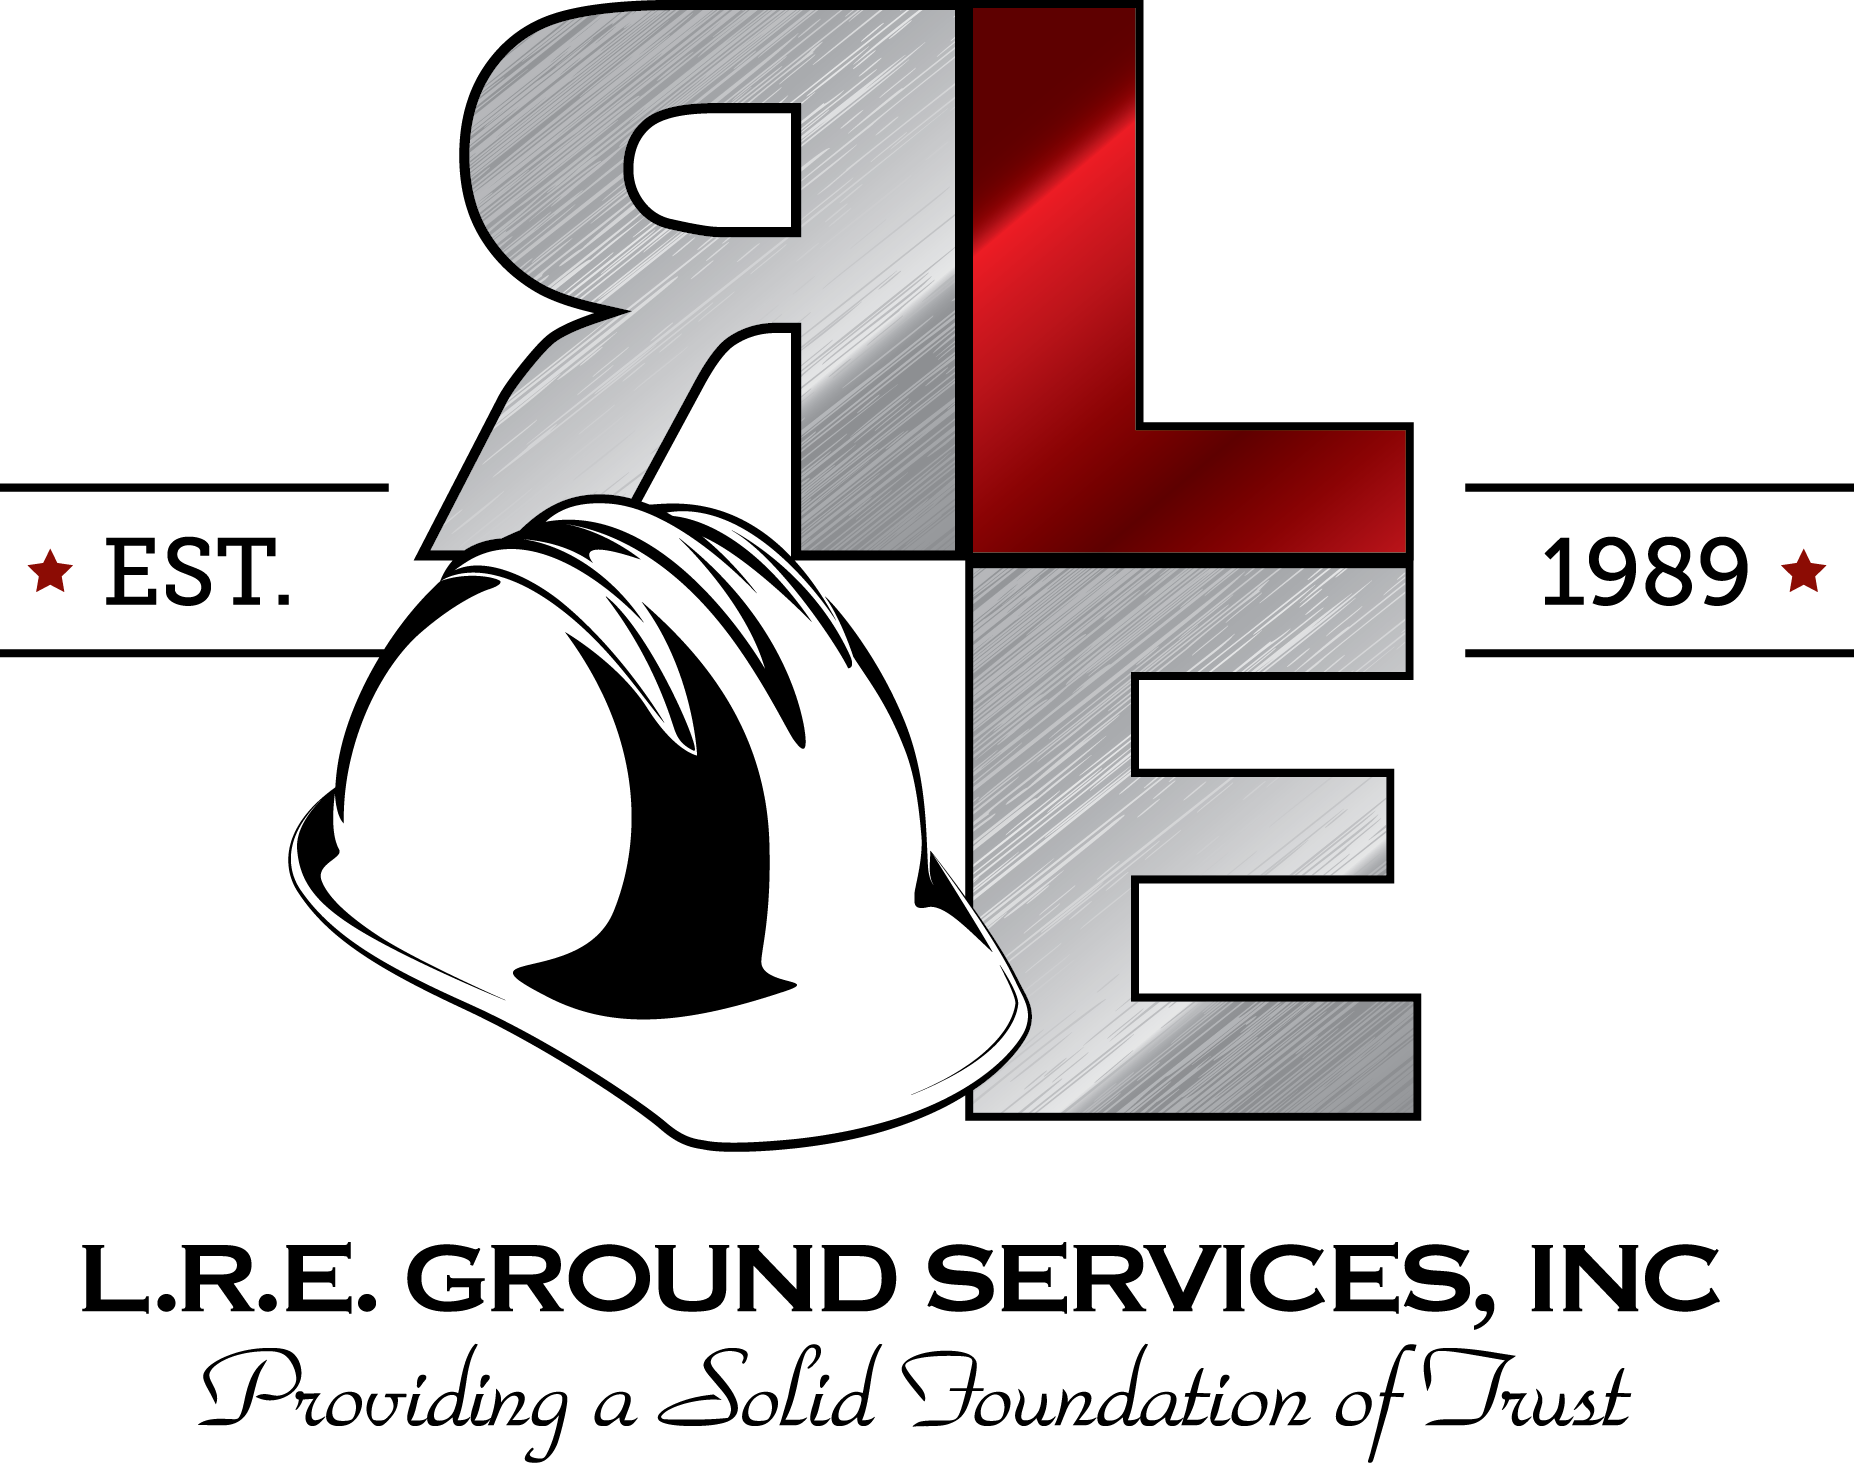 L.R.E Ground Services, Inc. Established in 1989. Providing a Solid Foundation of Trust